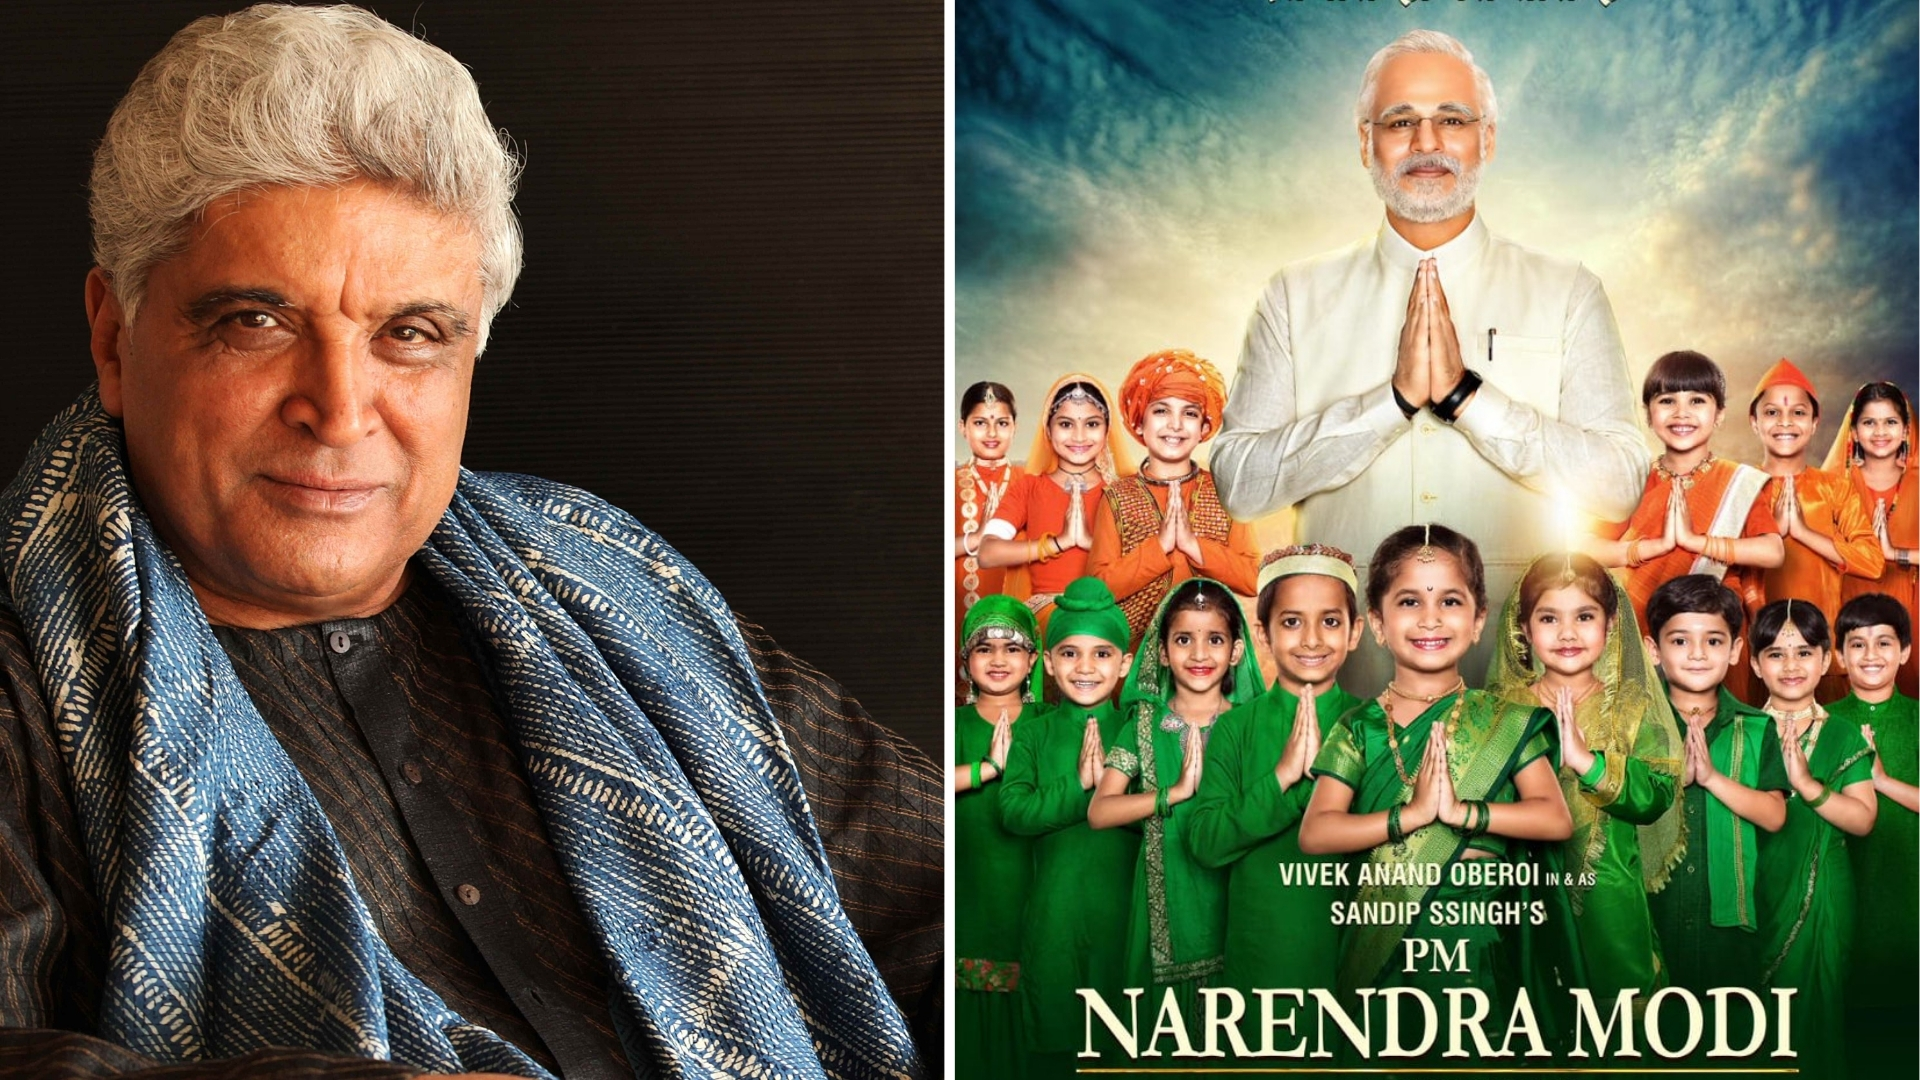 Intentions Clearly Not Correct: Javed Akhtar on 'Modi' Credit